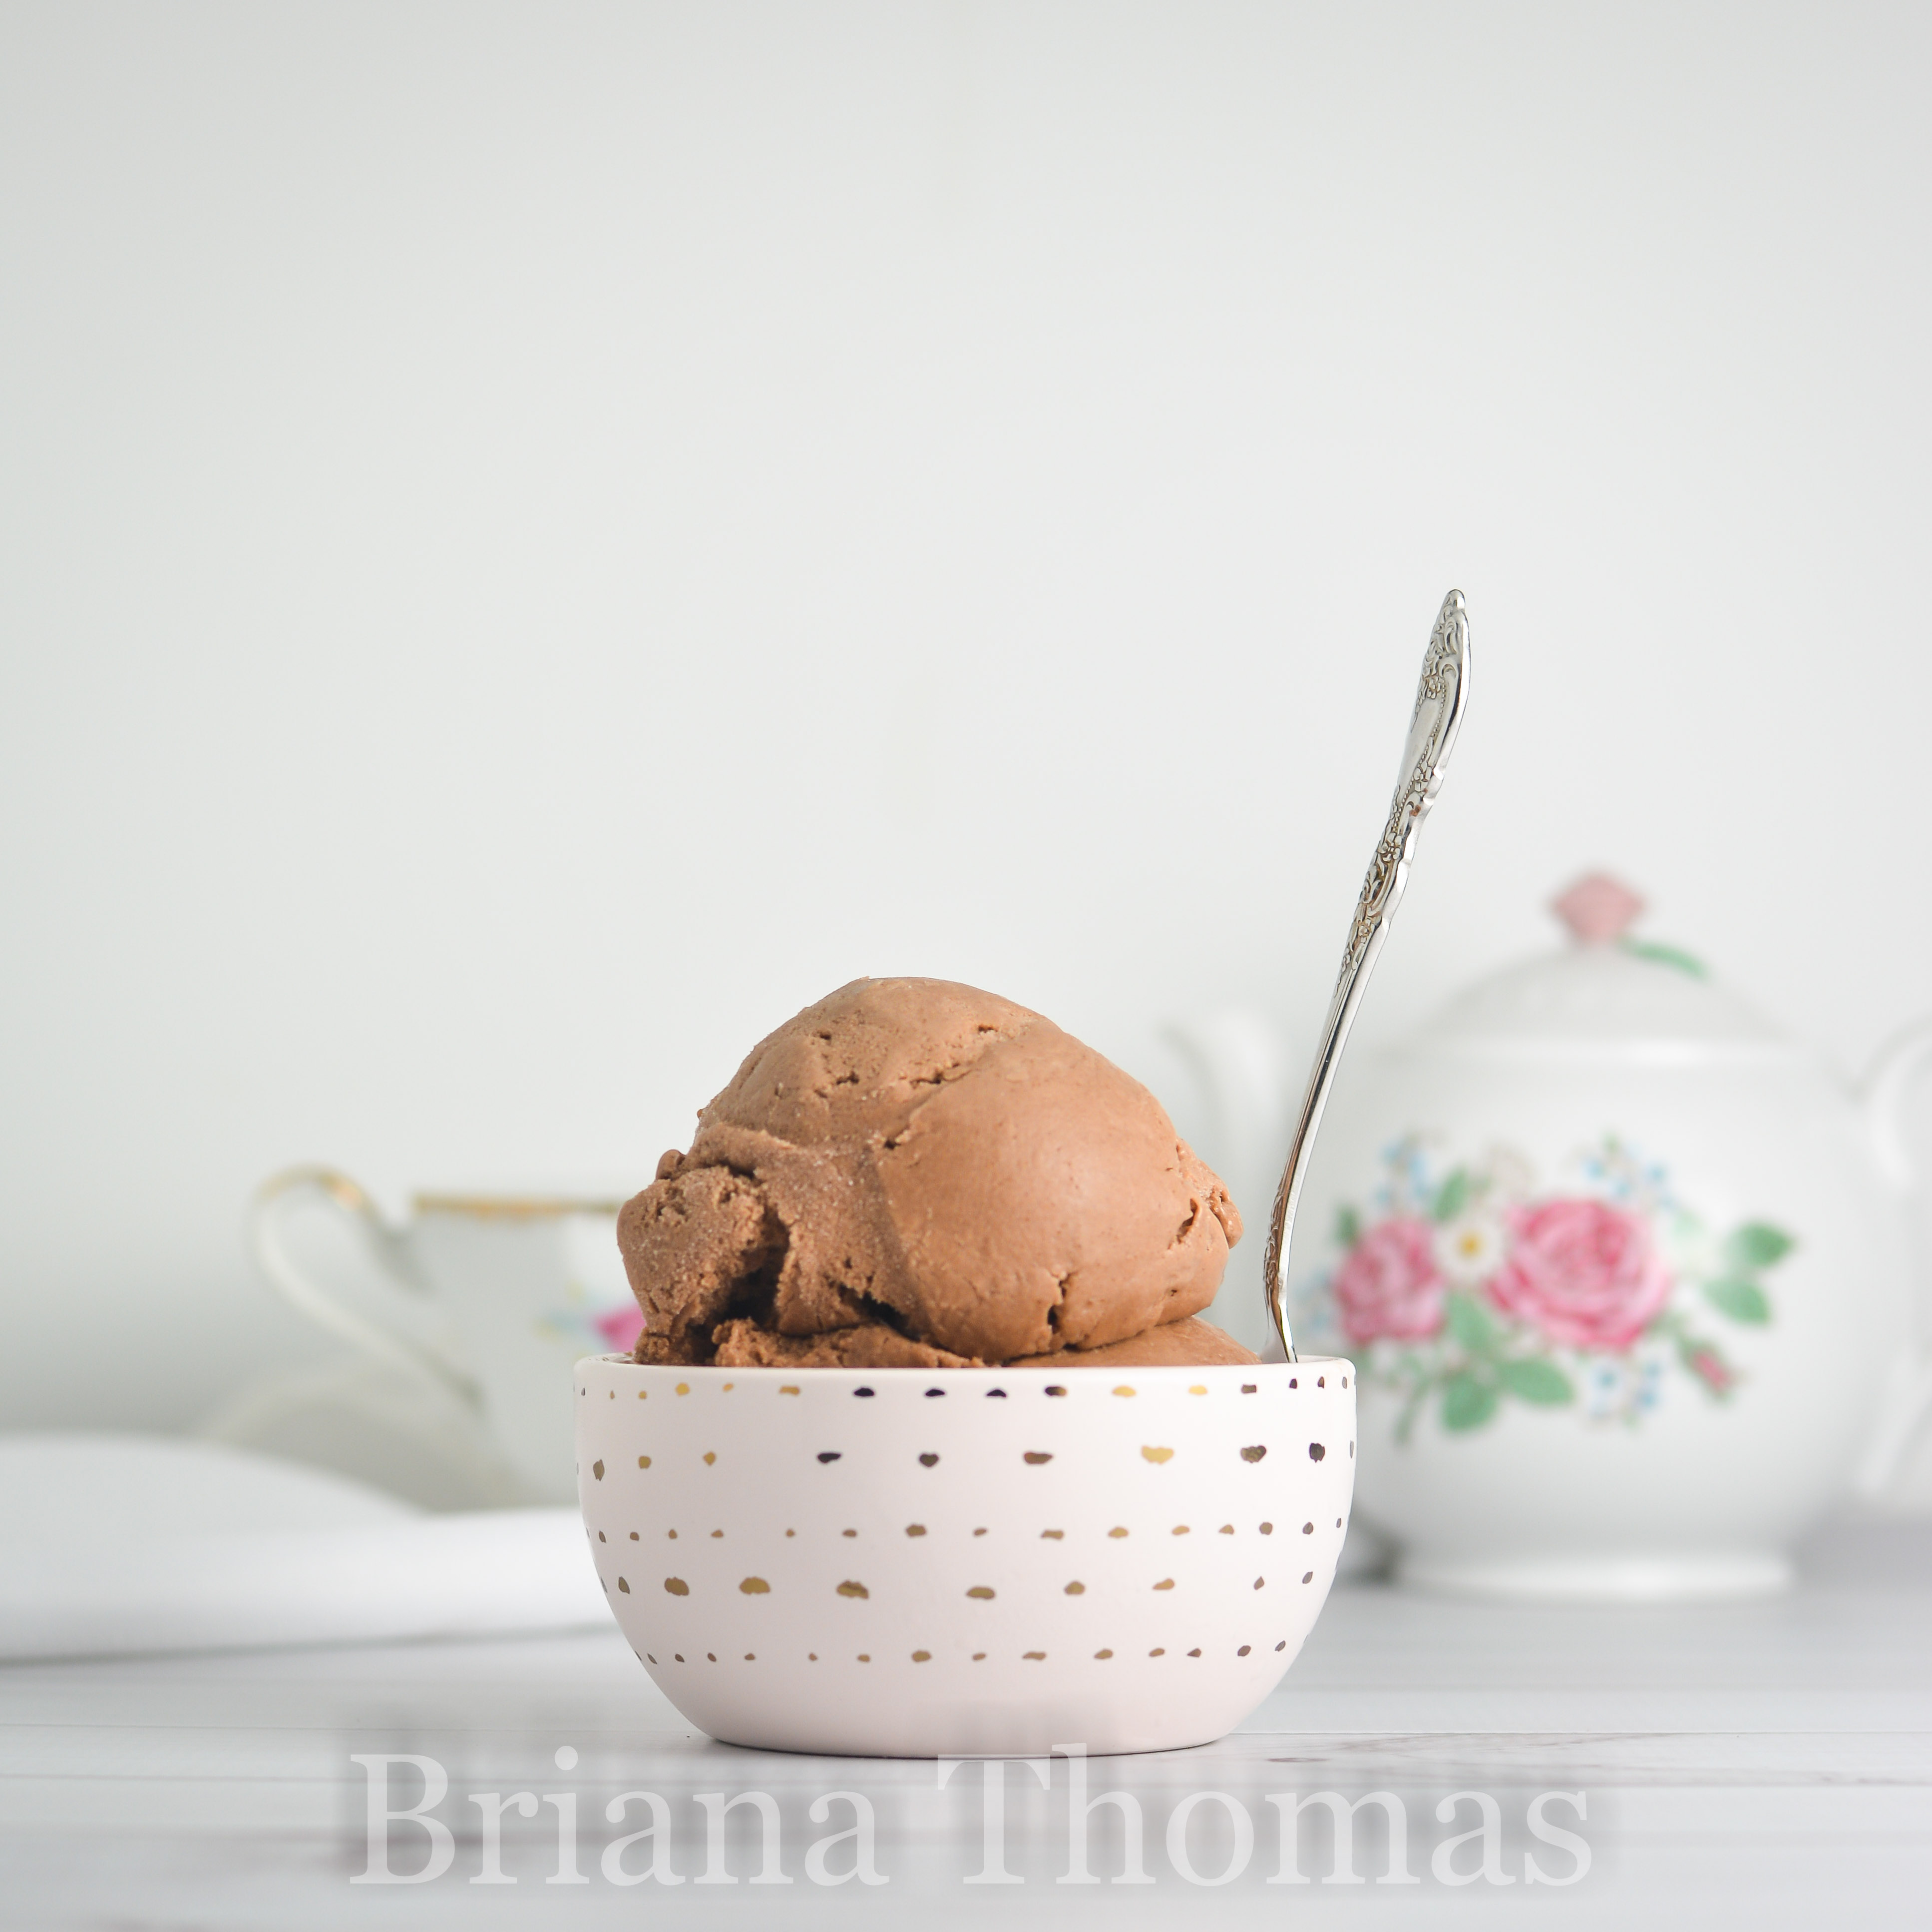 This delicious Dairy-Free Light Chocolate Ice Cream is smooth and creamy and more of a milk chocolate than dark chocolate. THM: Deep S, low carb, sugar free